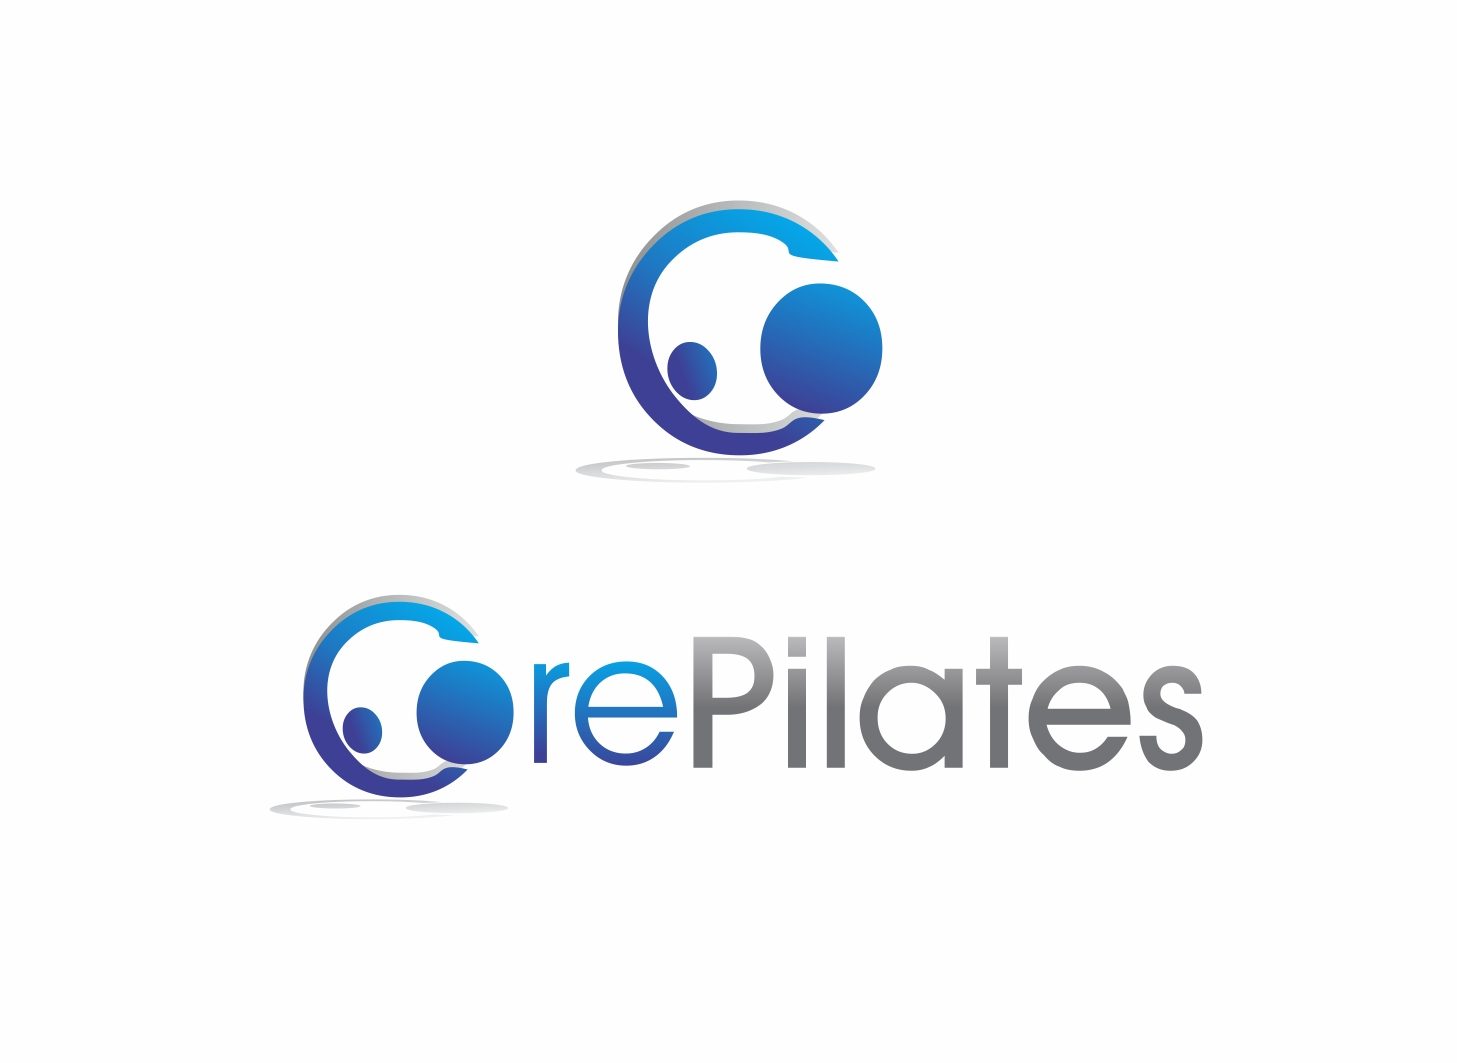 Logo Design by Zdravko Krulj - Entry No. 33 in the Logo Design Contest Core Pilates Logo Design.